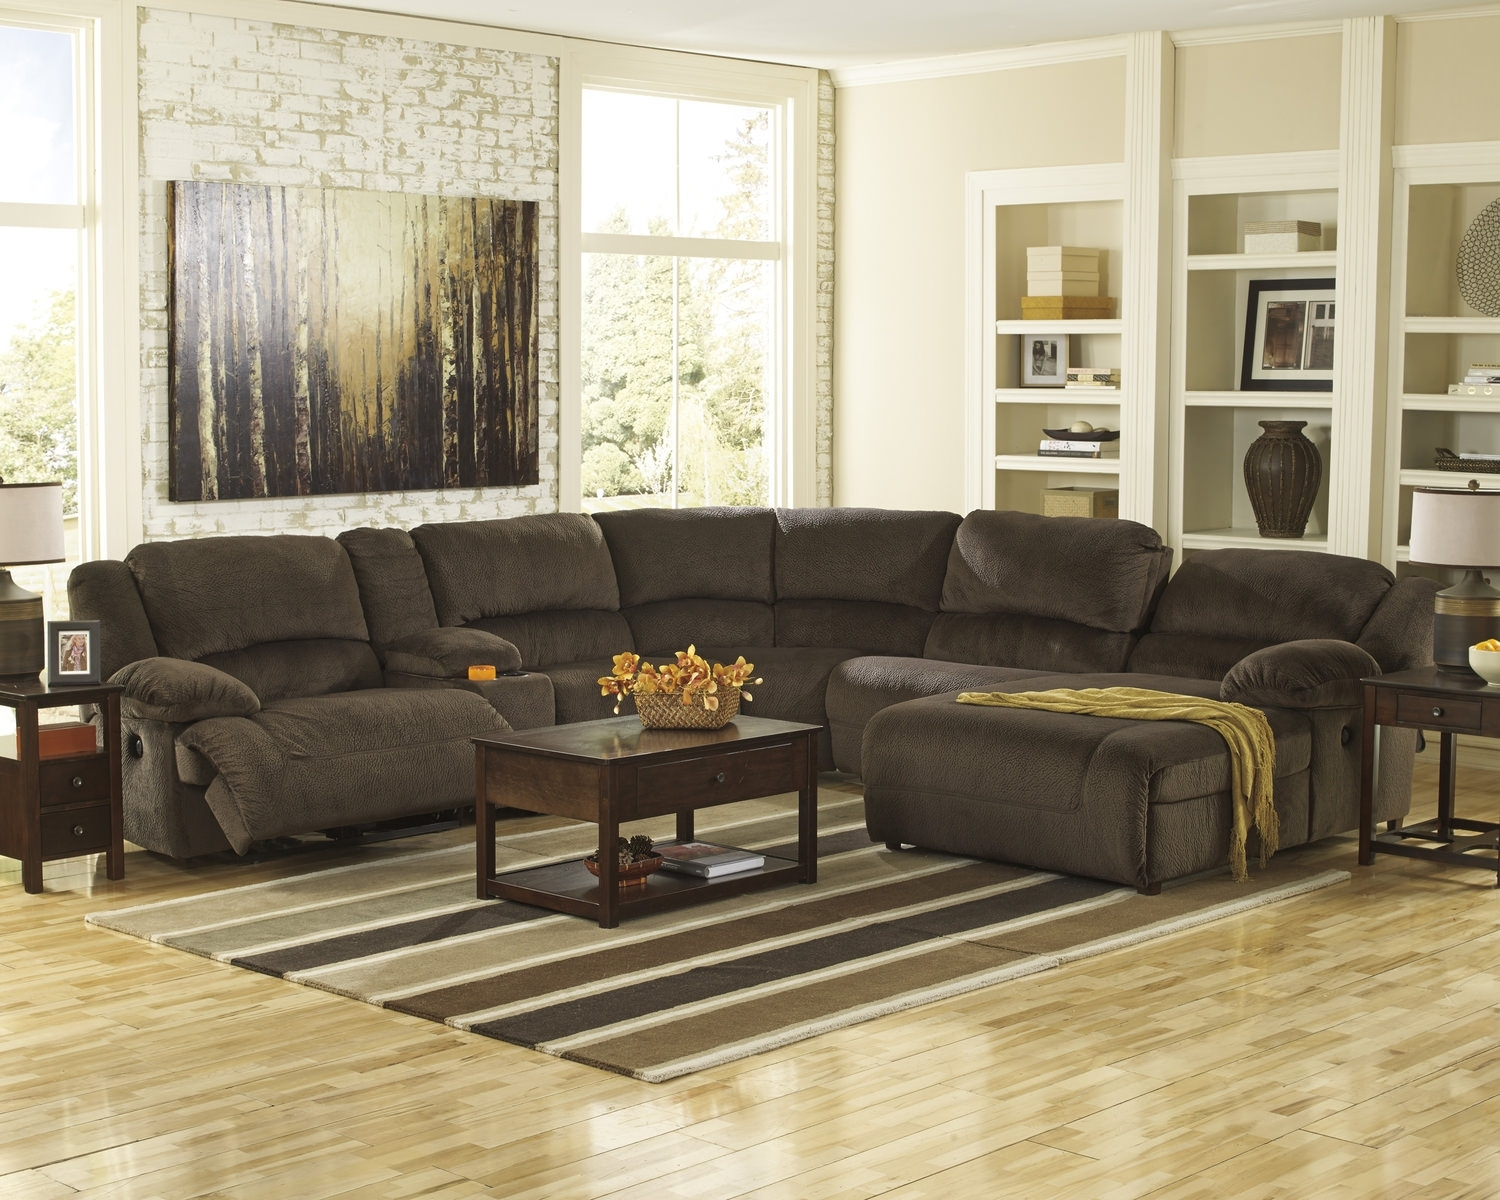 Living Room Sectionals – Leather & Fabric – Dock 86 with regard to Avery 2 Piece Sectionals With Raf Armless Chaise (Image 21 of 30)